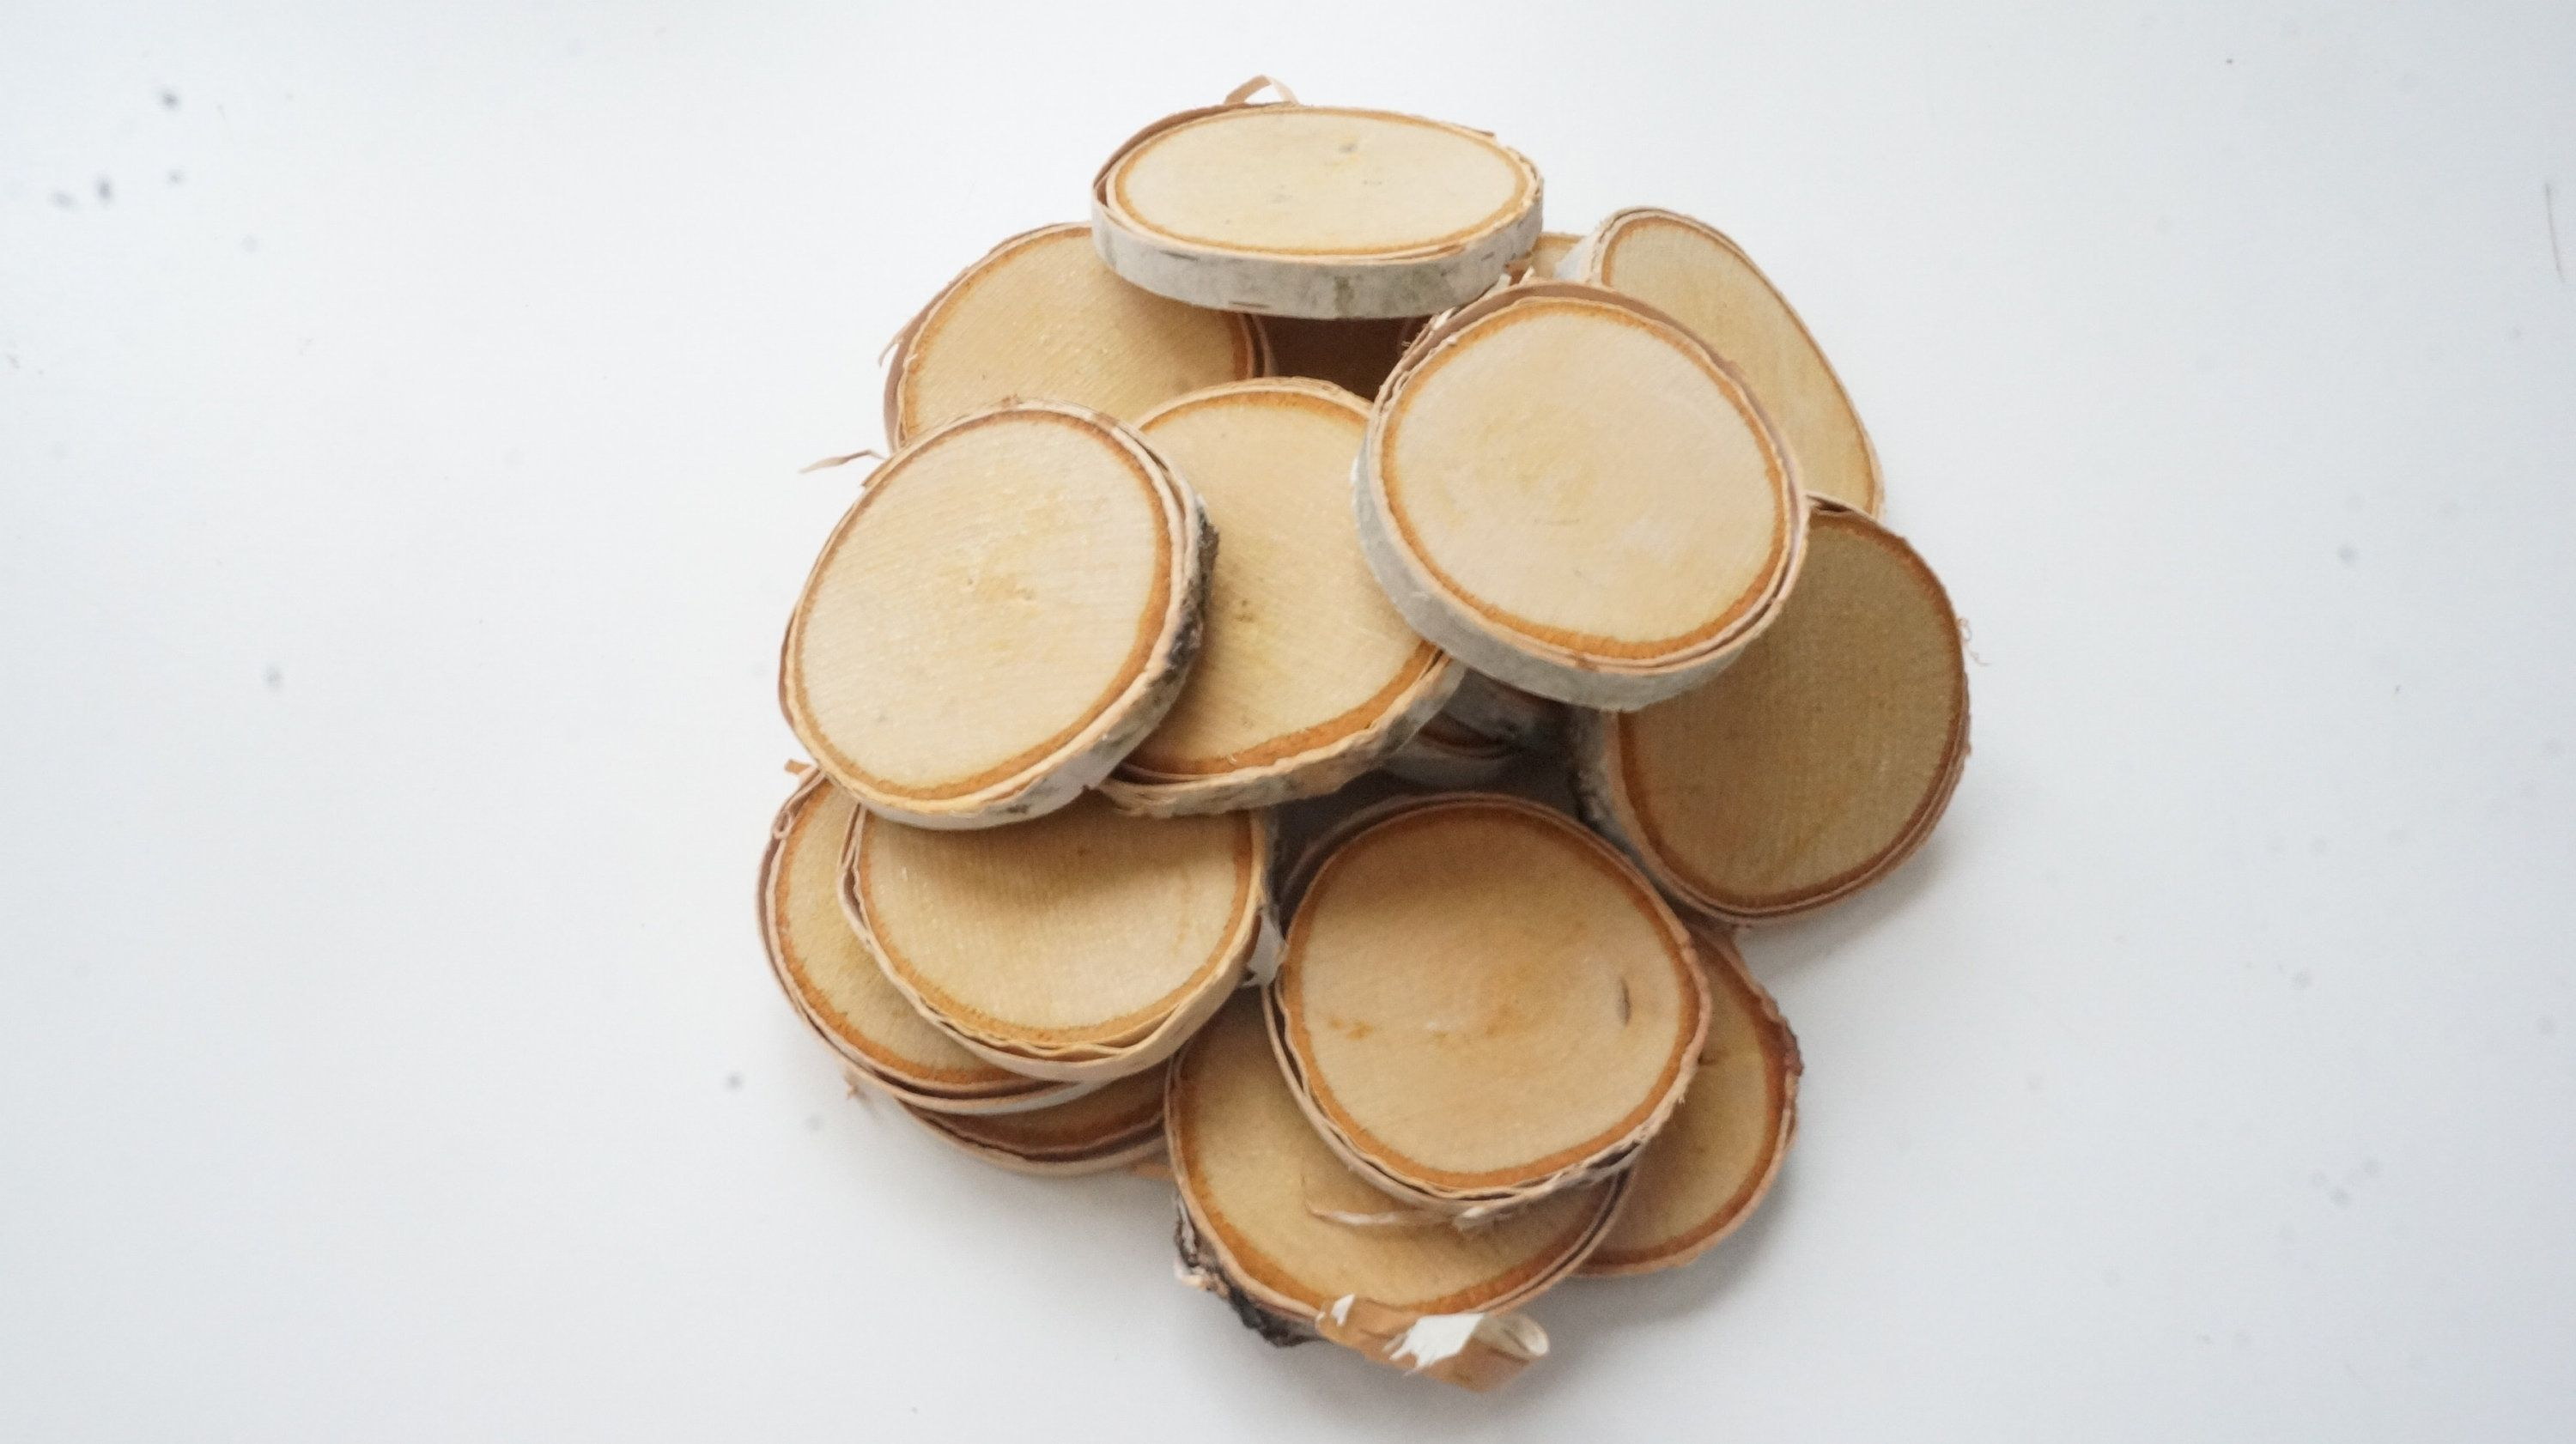 20 Small Birch Tree Slices 1 1 2 1 7 8 Inch Ornament Blanks Bulk Mini Log Slabs Tiny Wood Discs Pyrography Supplies Wood Slices Tree Slices What Sells On Etsy